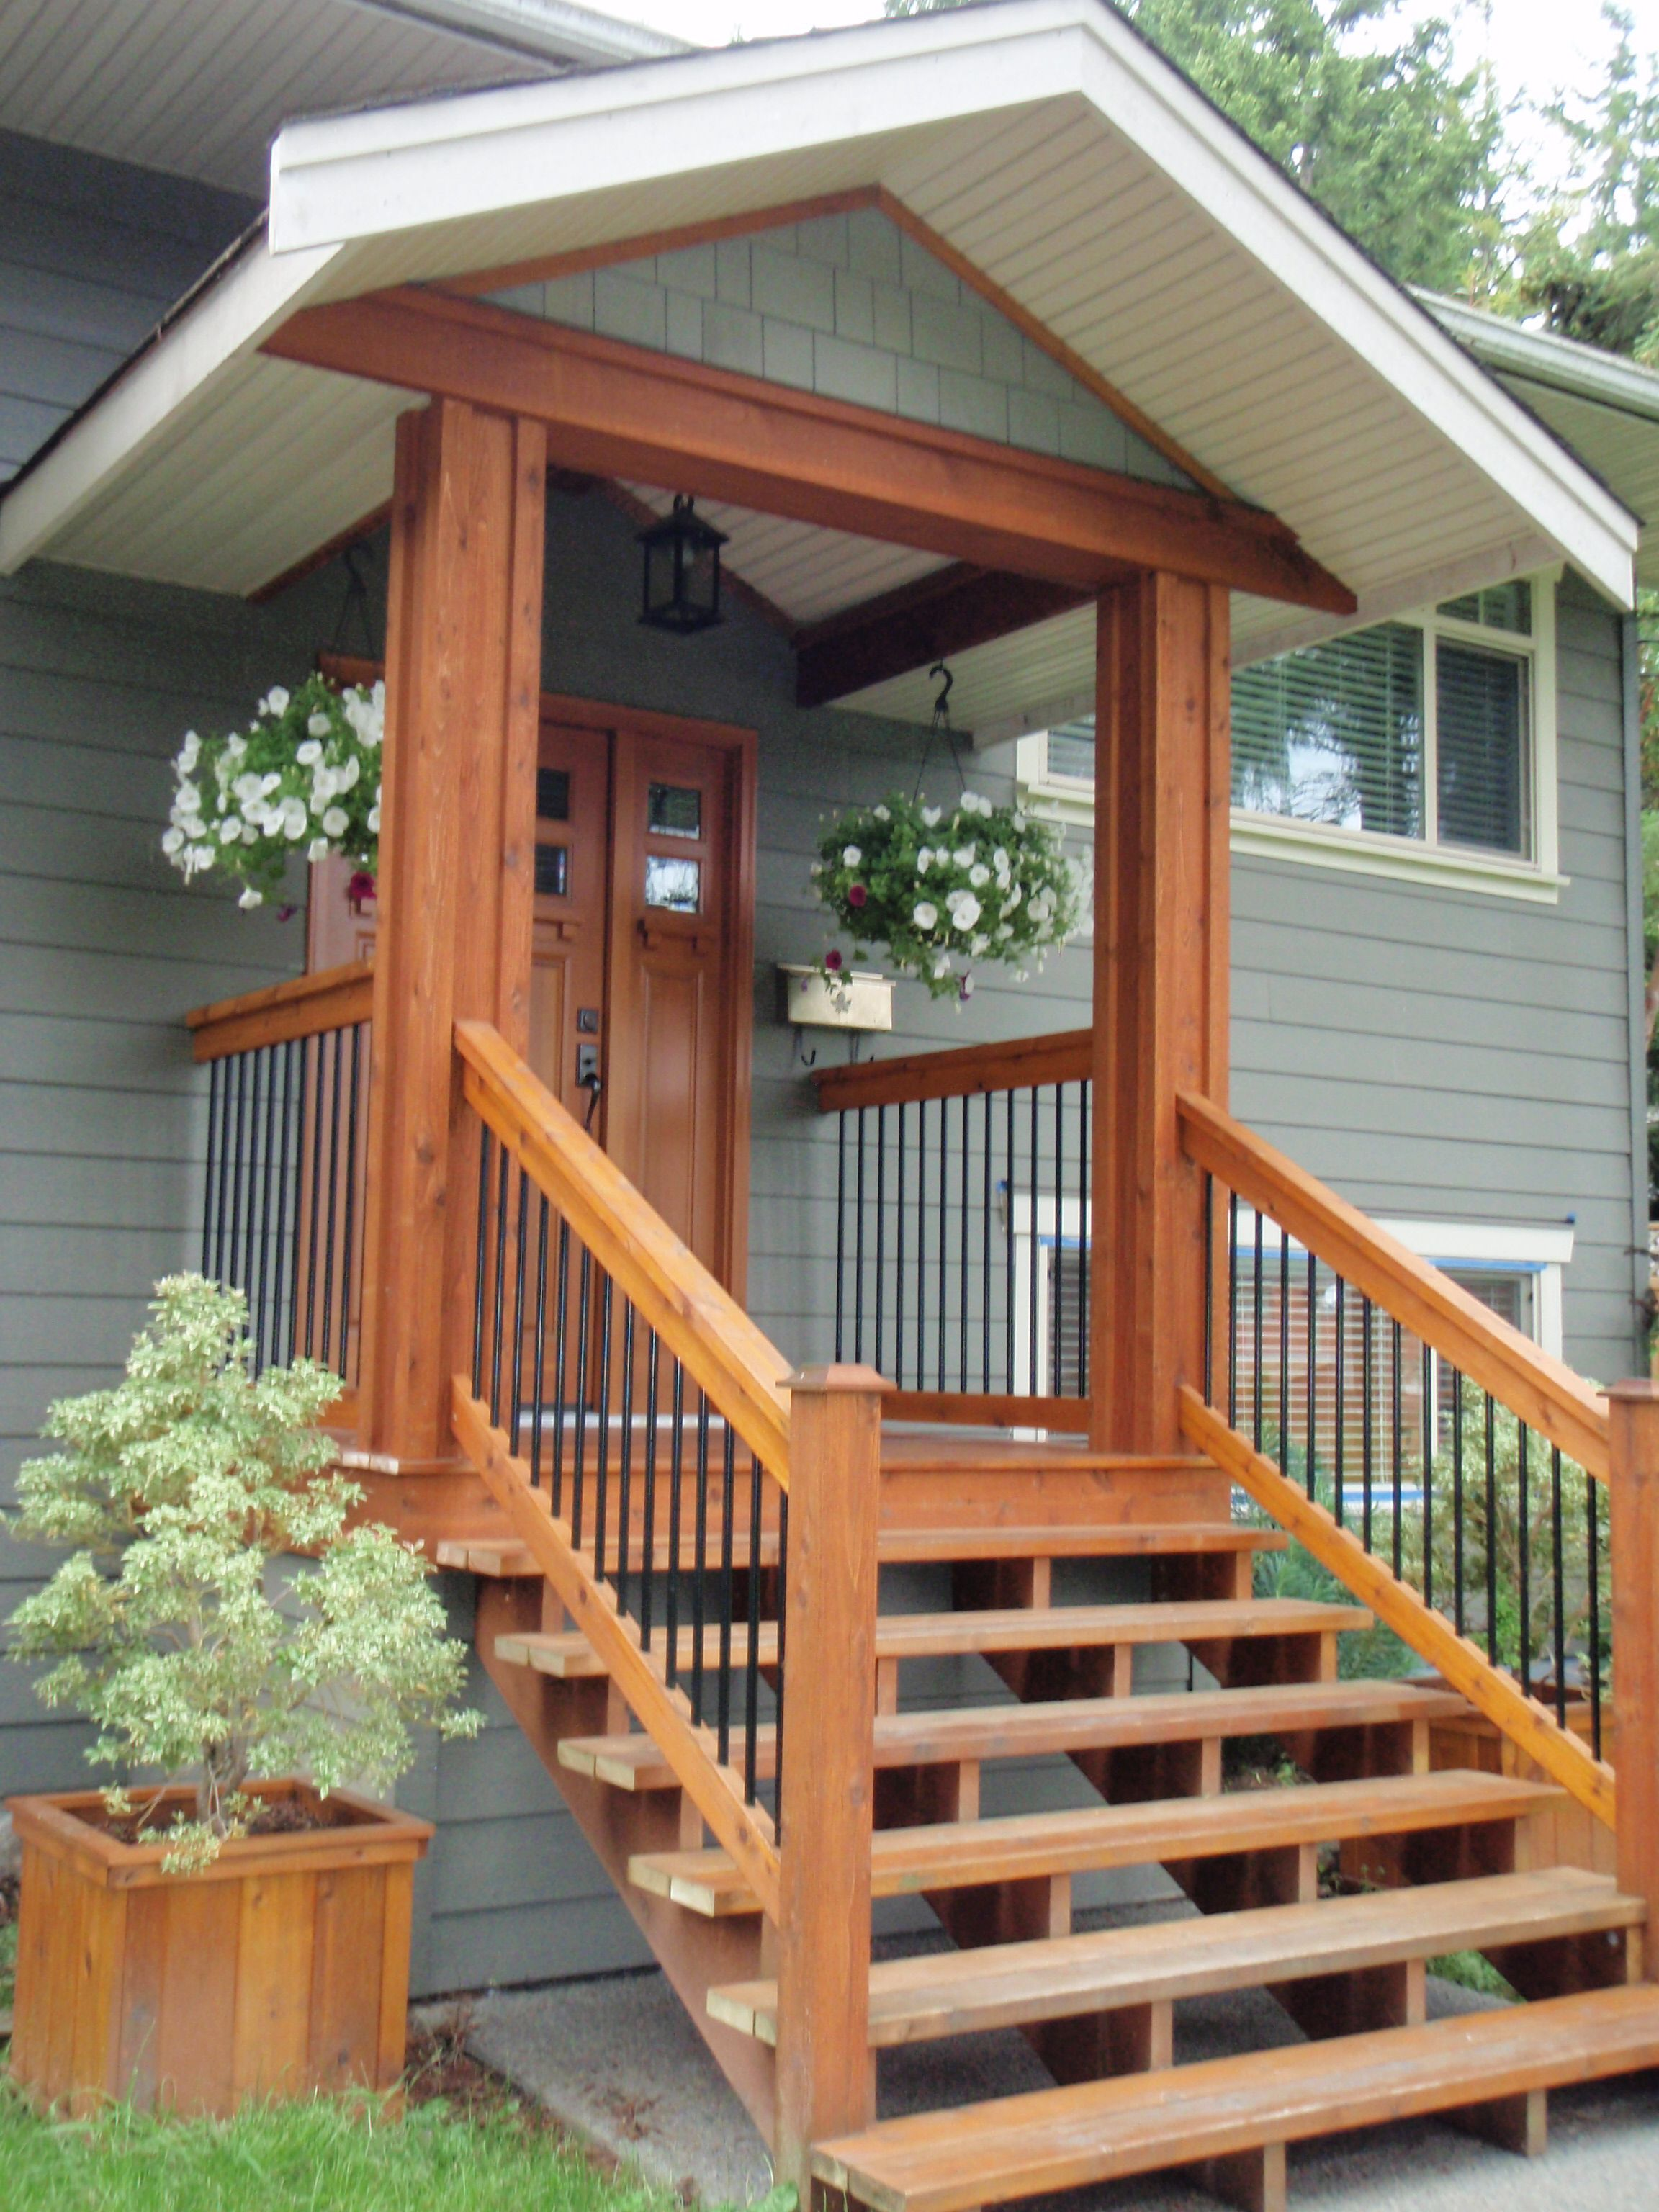 Like It Very Small Porch Then Simple Wood Stairs I Wonder If We Could Figure Out A Overhang This On The Back Of Our House That Would Look